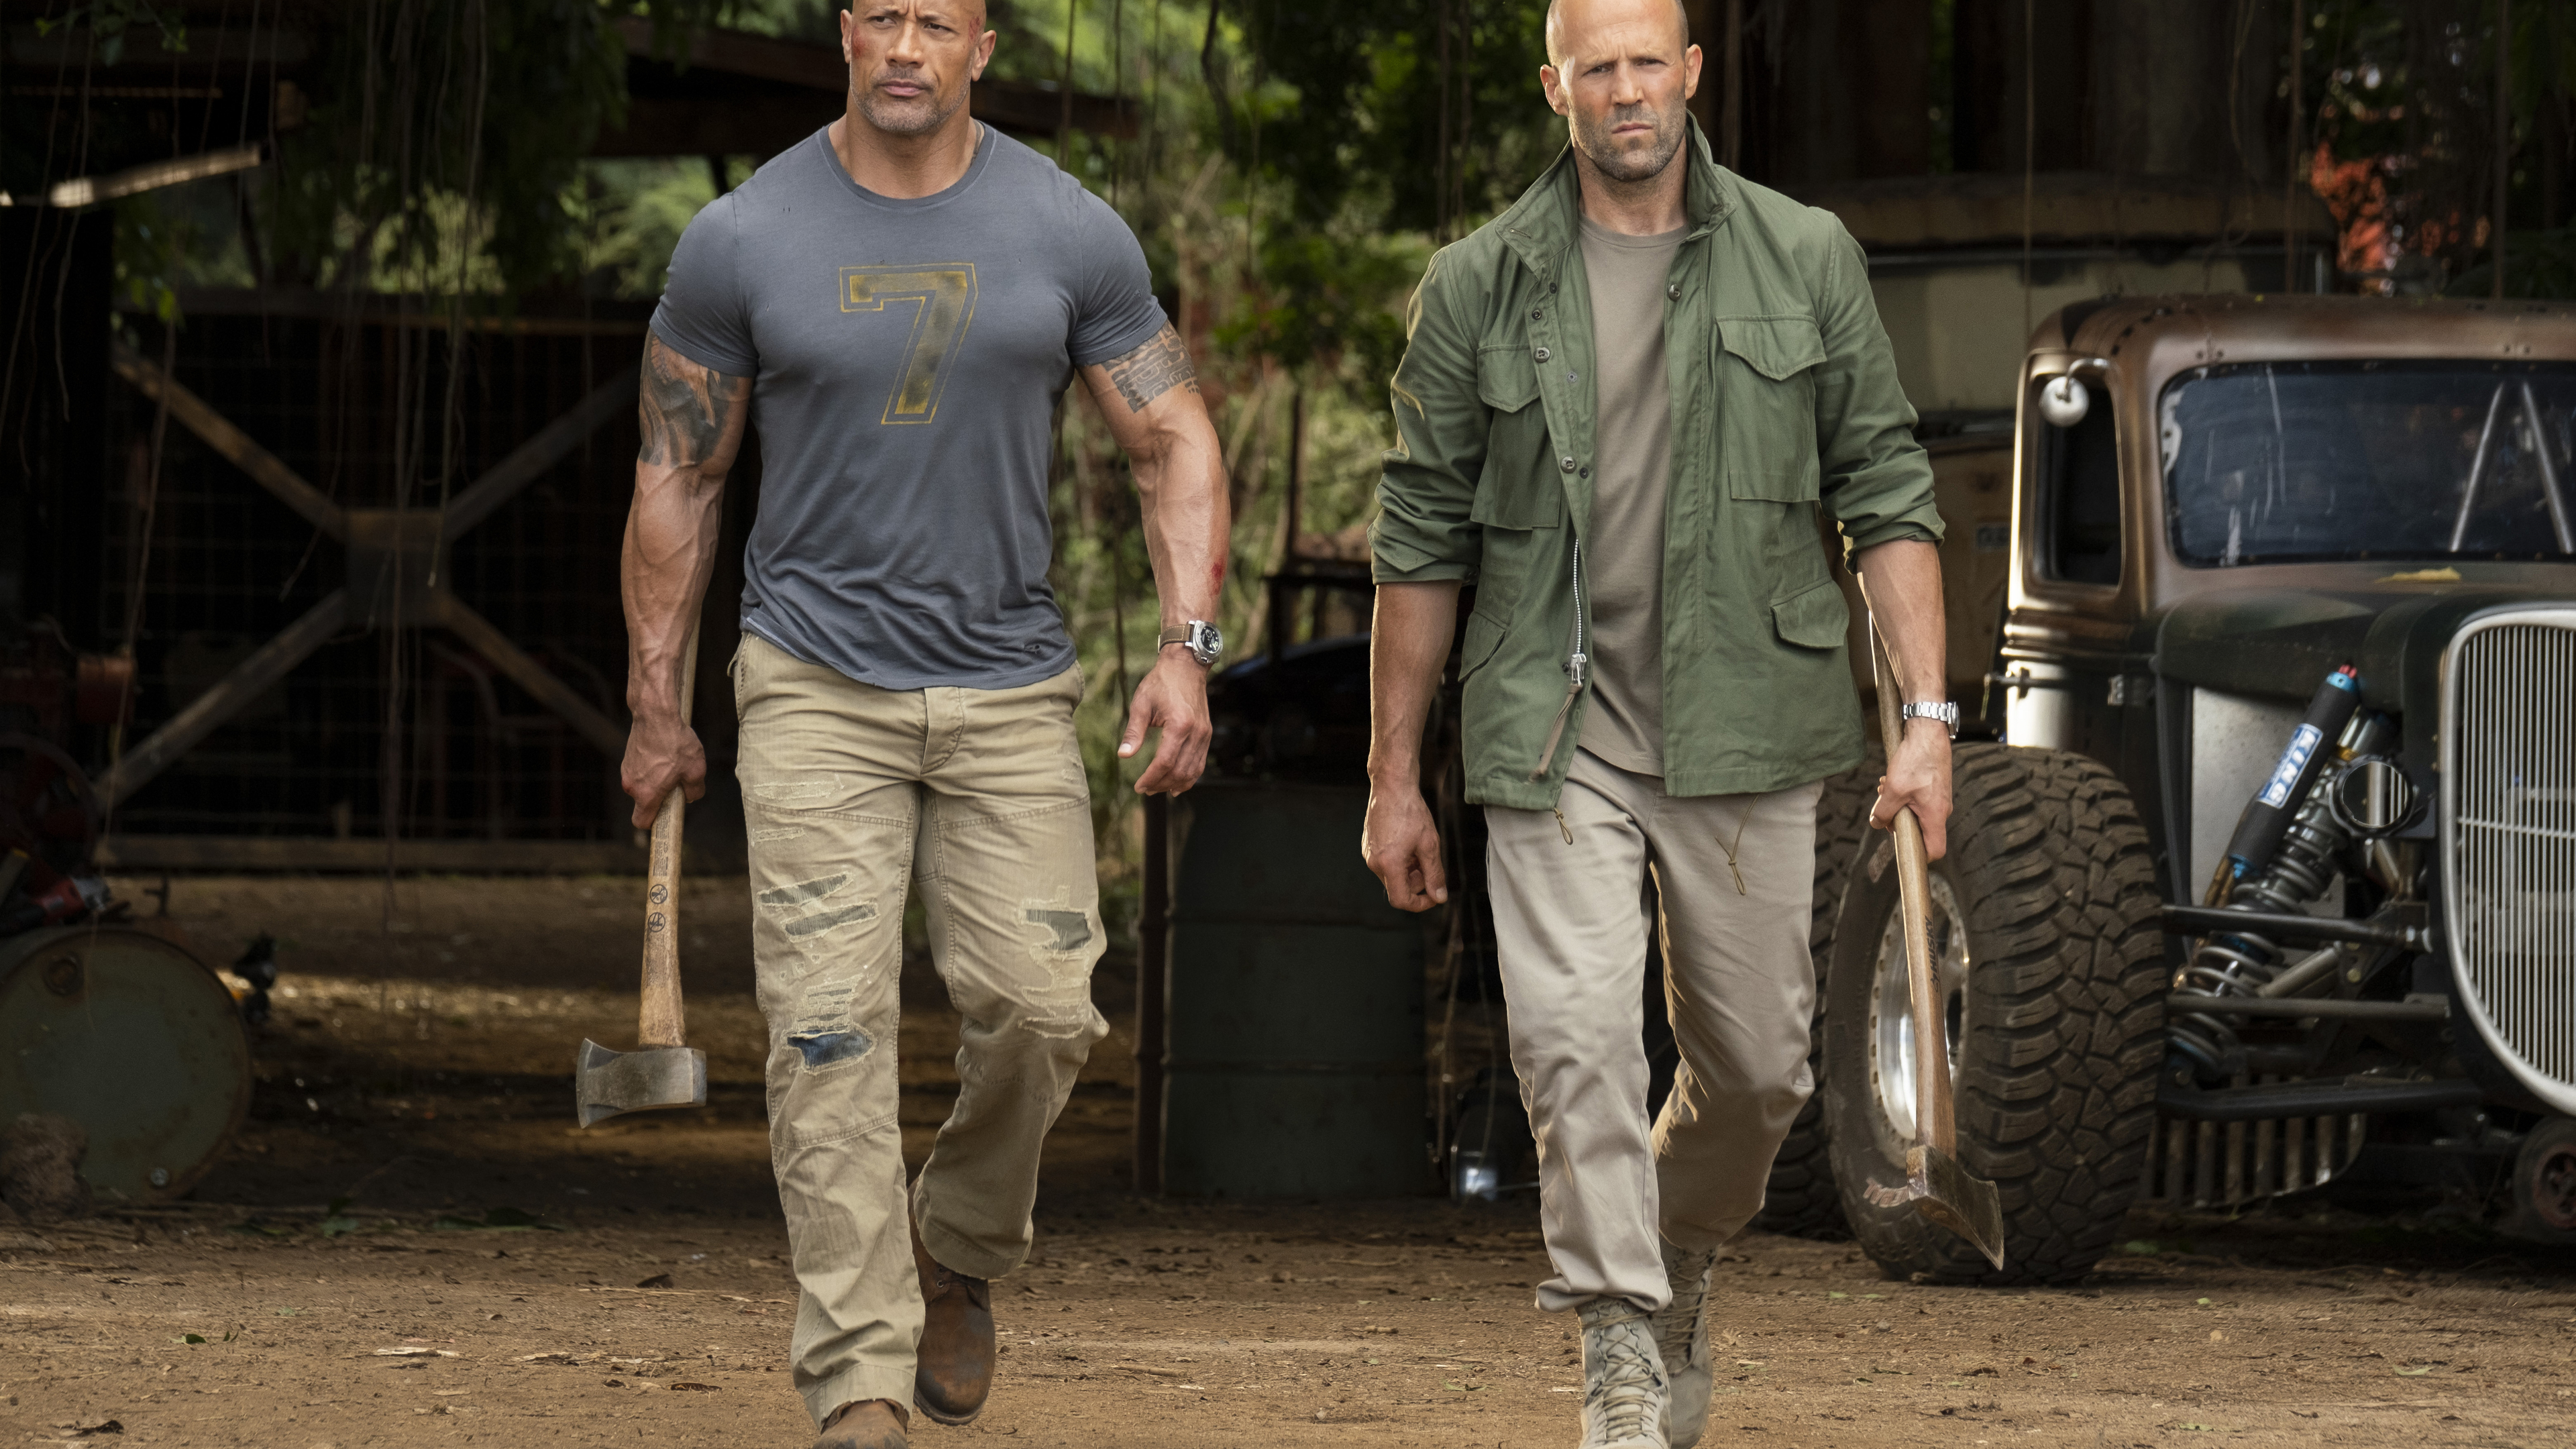 hobbs and shaw 1563220849 - Hobbs And Shaw - poster wallpapers, movies wallpapers, jason statham wallpapers, hobbs and shaw wallpapers, hd-wallpapers, dwayne johnson wallpapers, 5k wallpapers, 4k-wallpapers, 2019 movies wallpapers